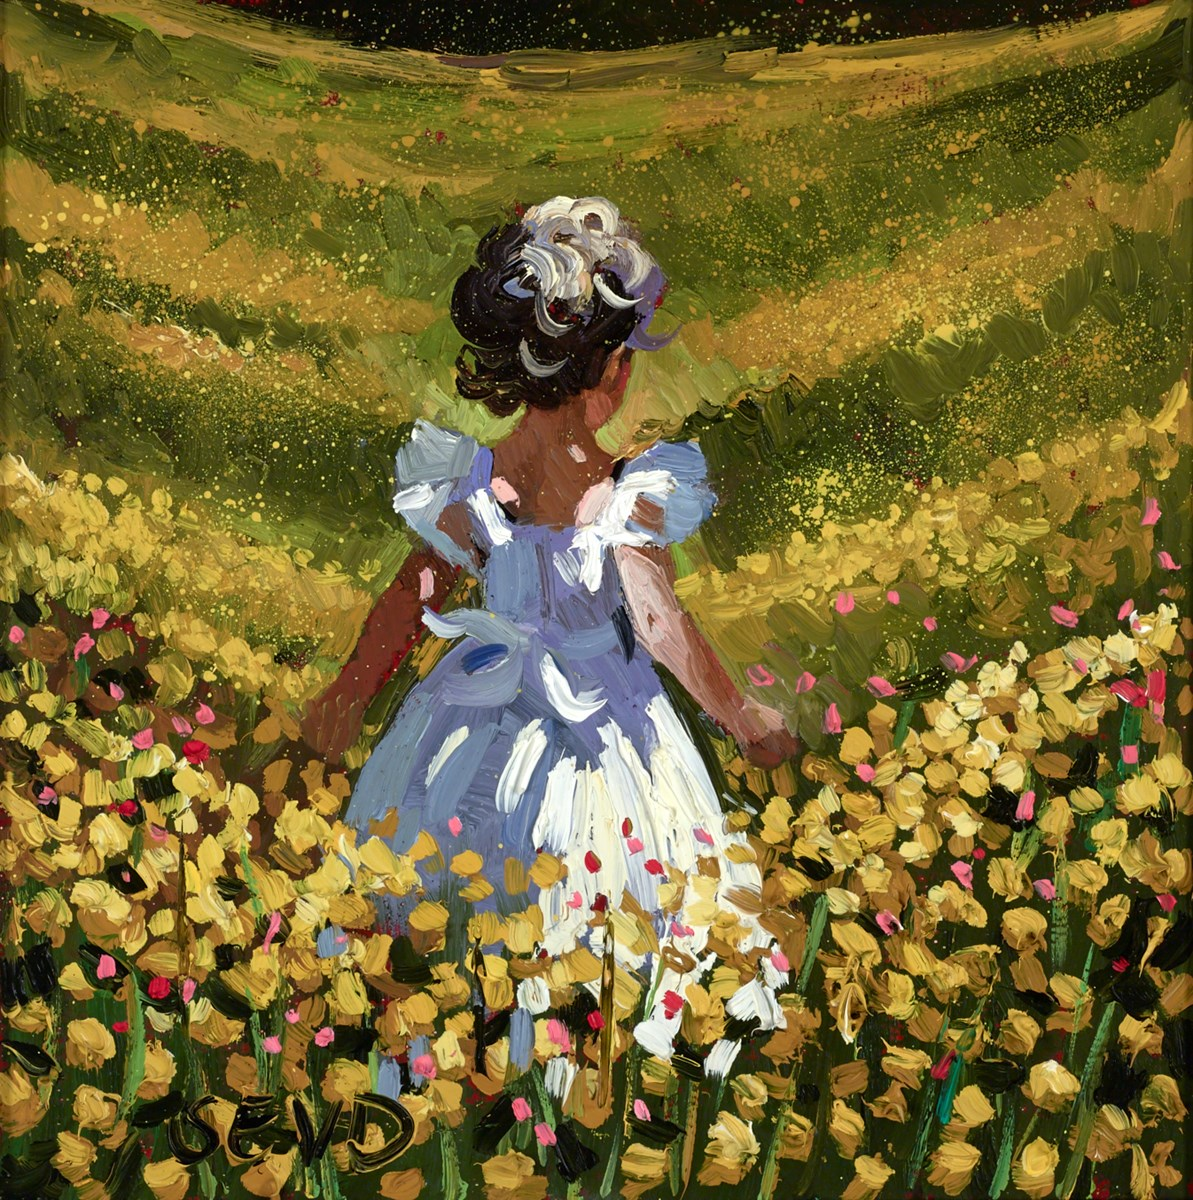 Meadow of Golden Flowers by sherree valentine daines -  sized 8x8 inches. Available from Whitewall Galleries